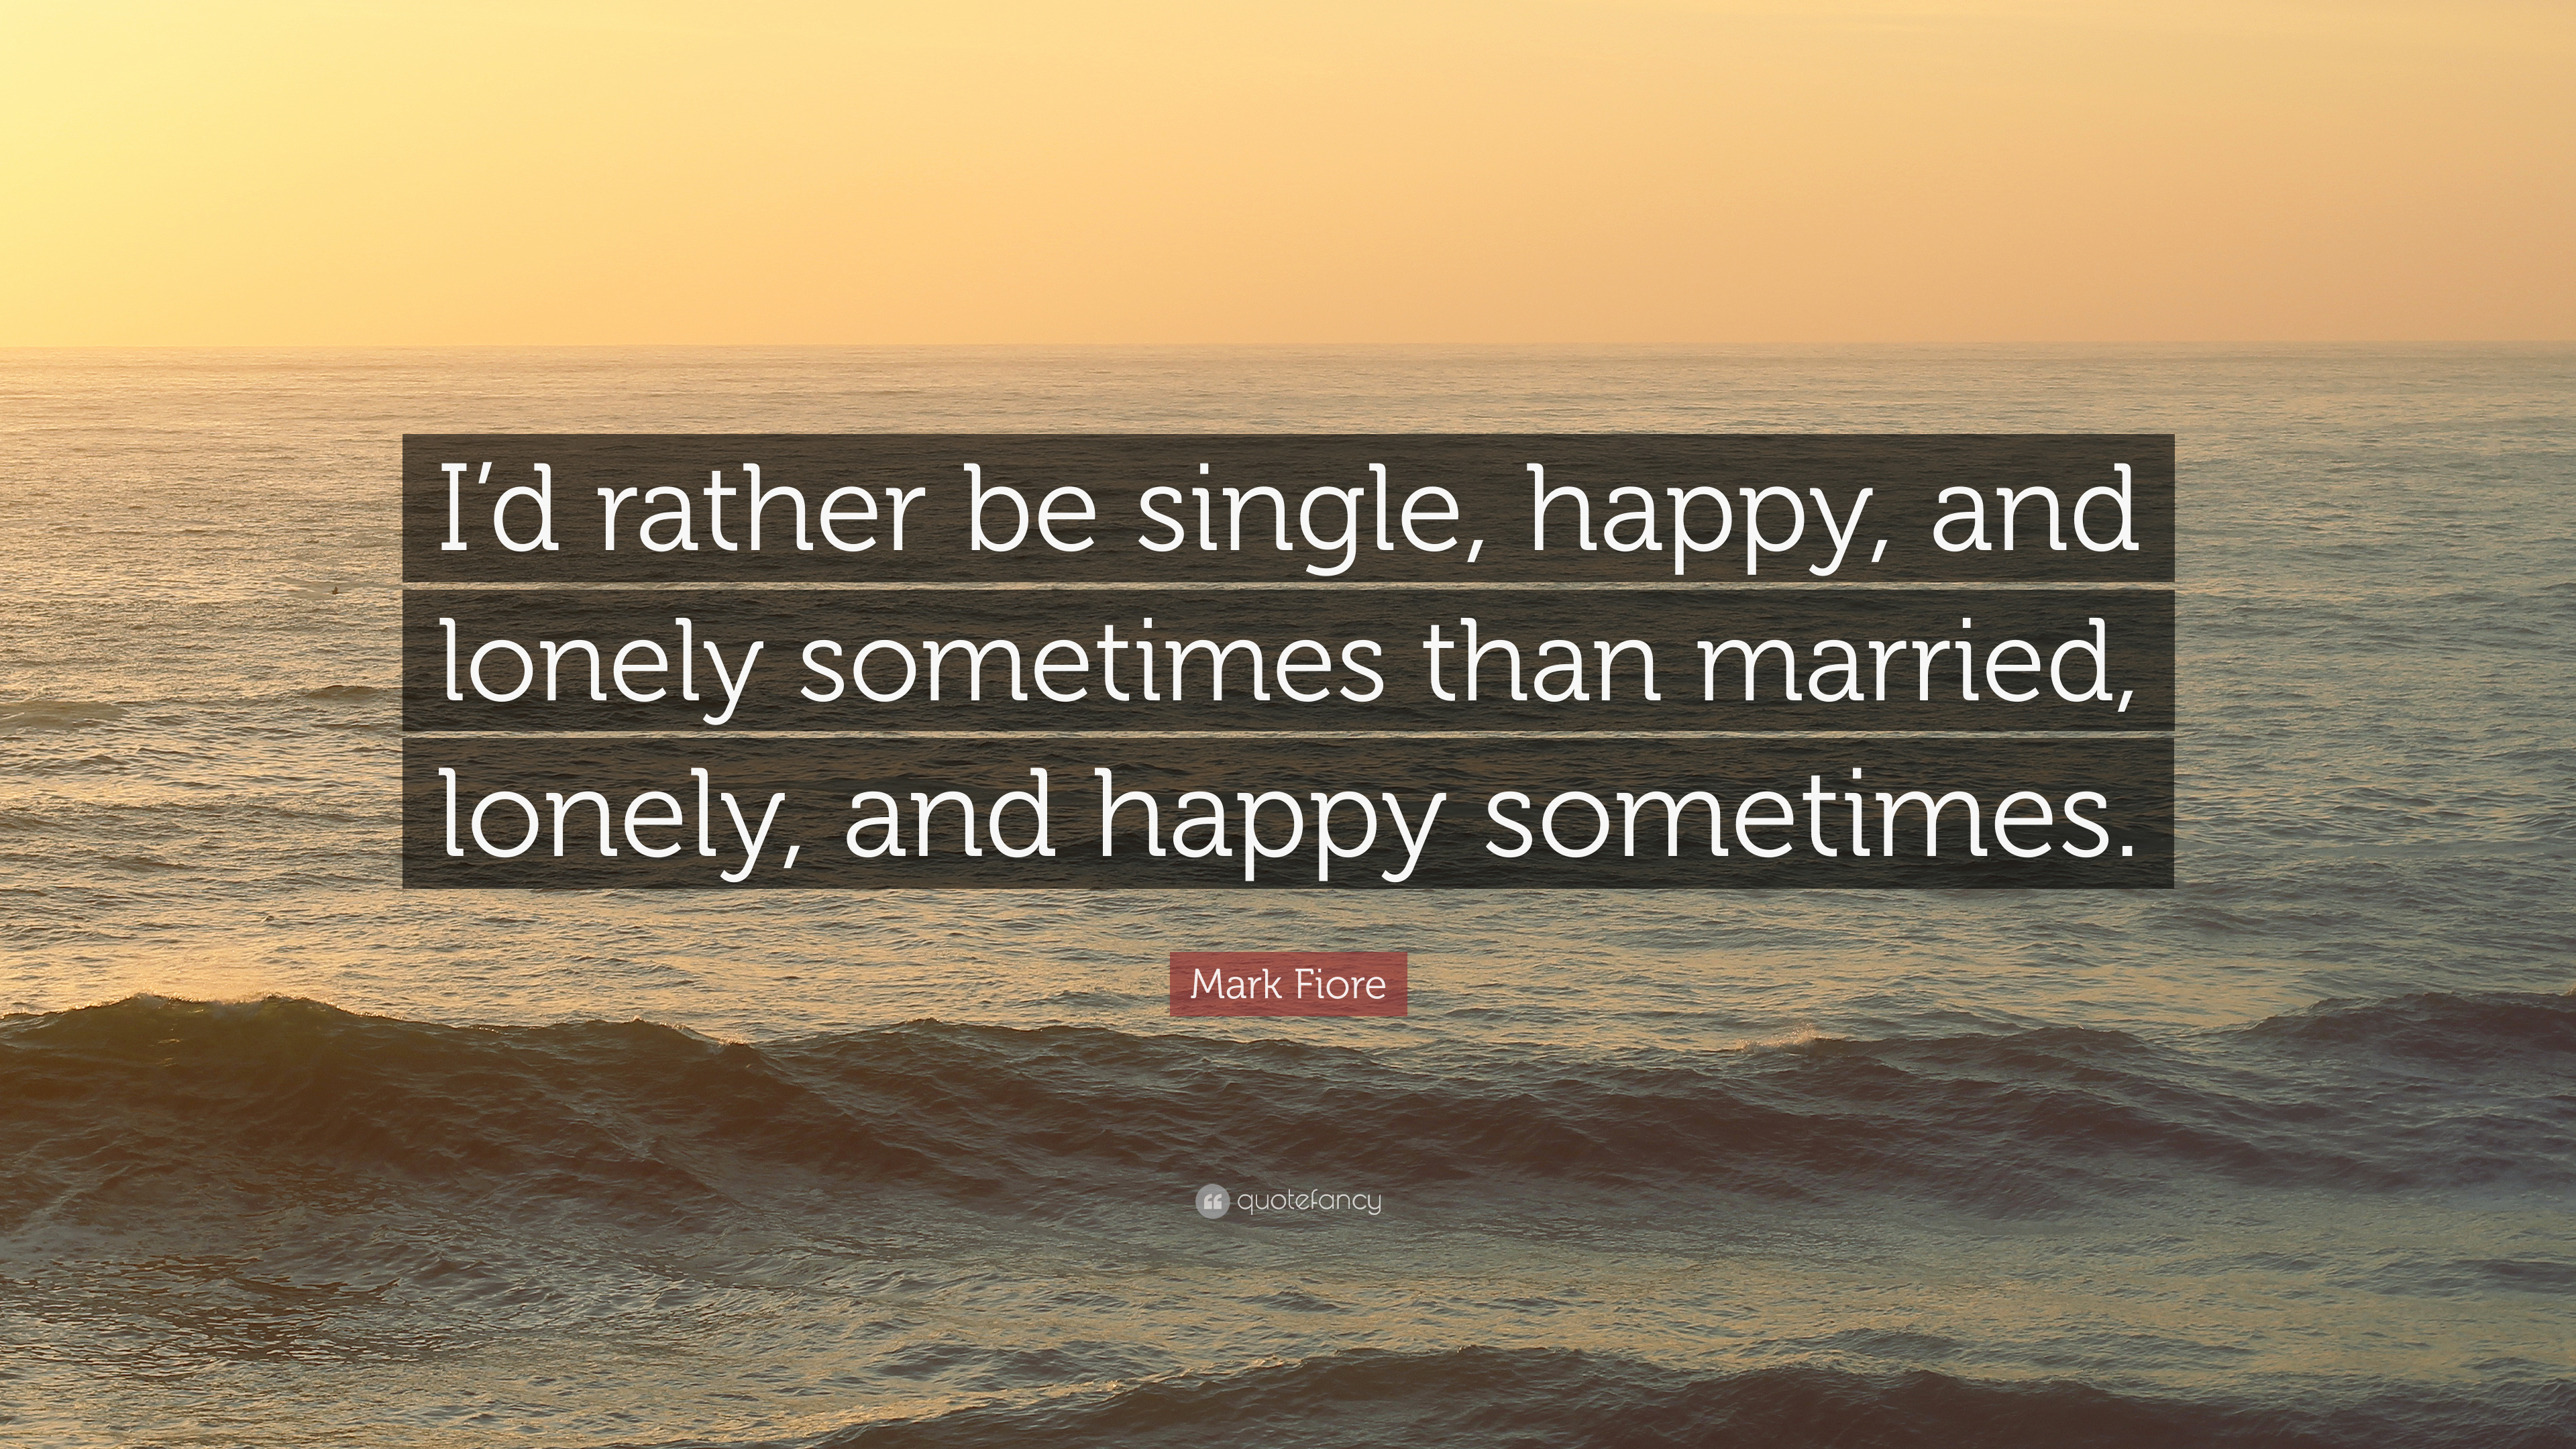 Mark Fiore Quote Id Rather Be Single Happy And Lonely Sometimes